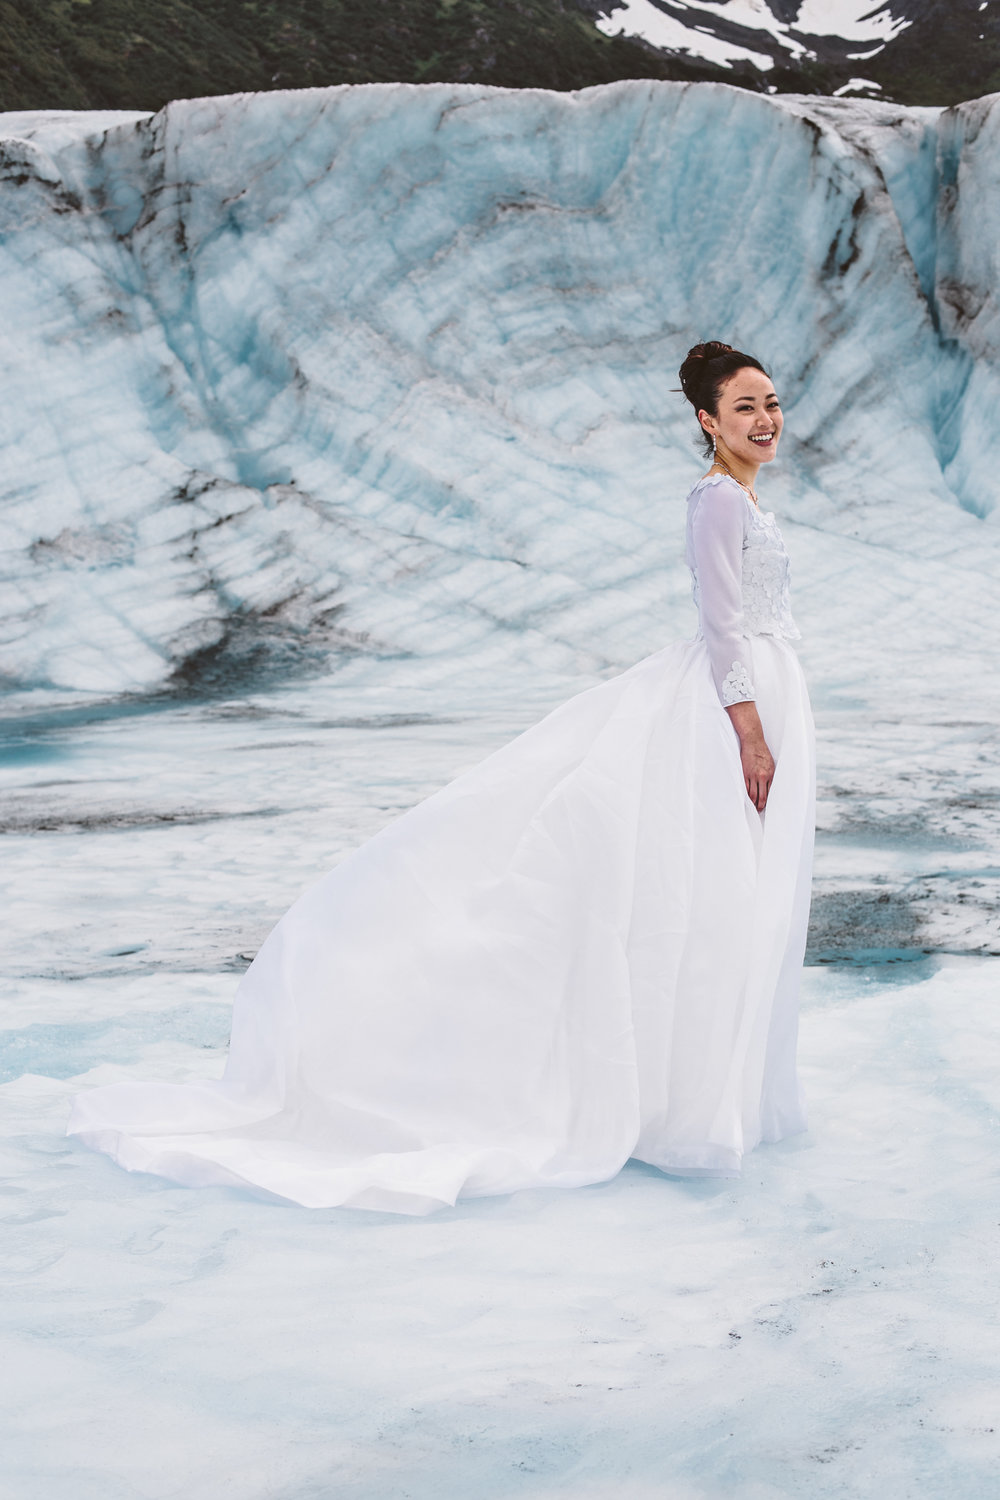 Glacier Bridal Photos